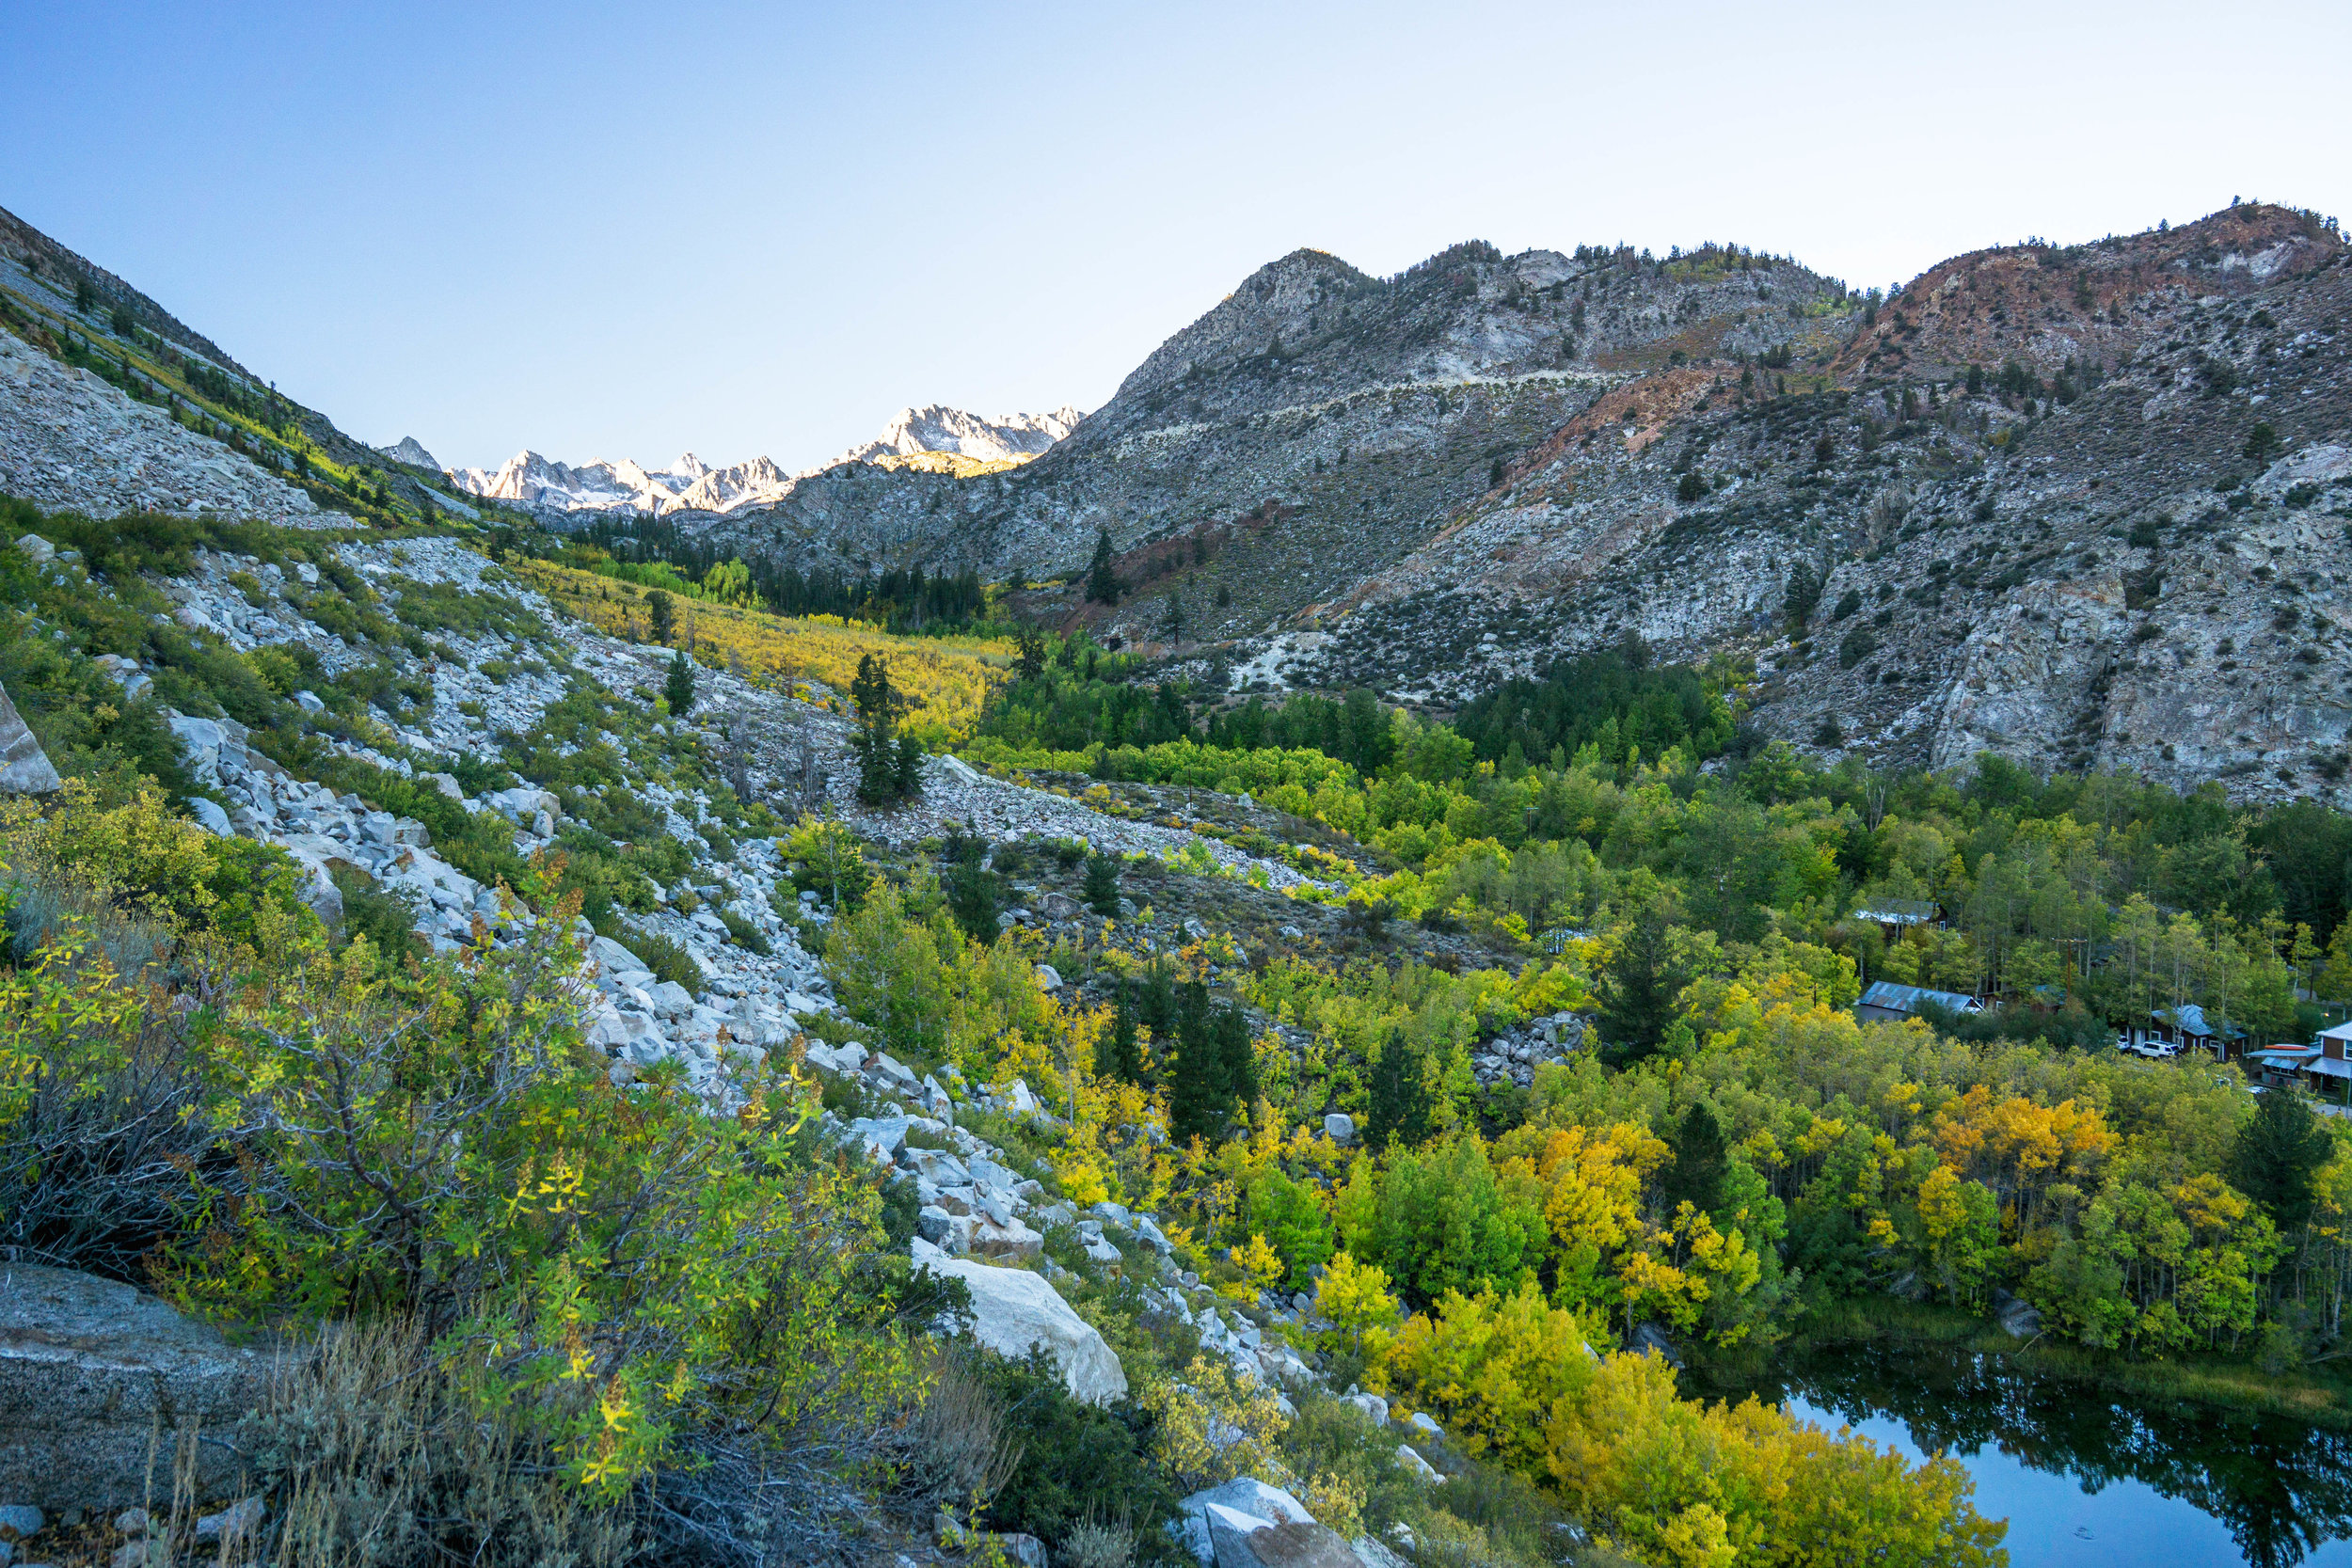 During what's rumored to be a poor year for Fall color spotting, we head off to the Sierras anyways to search for ourselves.